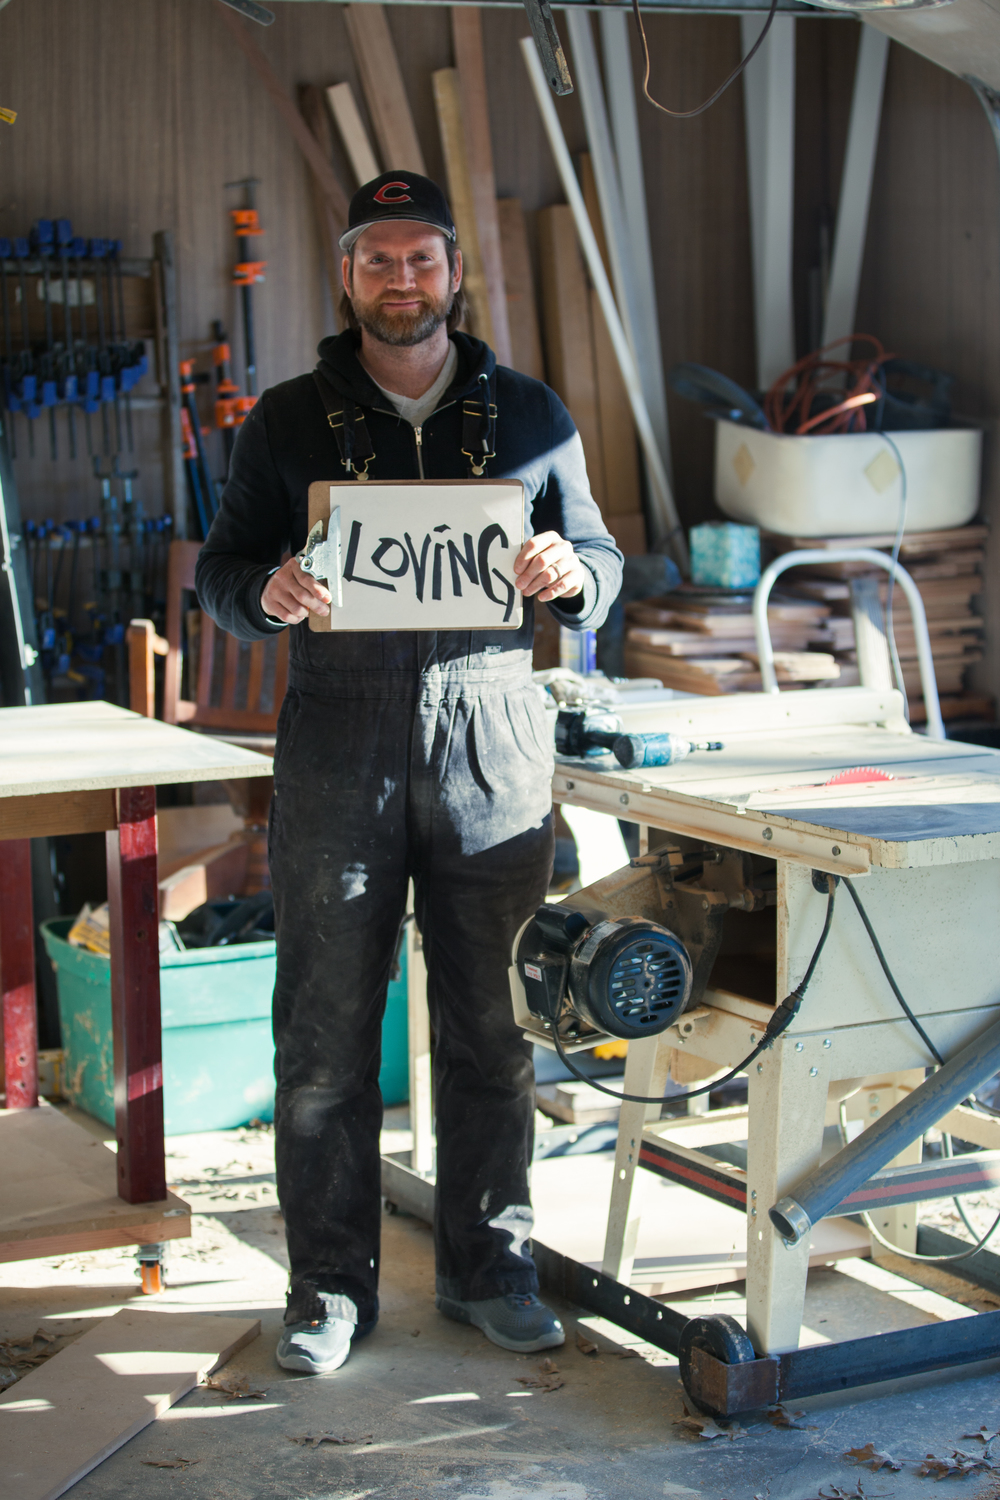 Man holding a sign saying loving in a woodshop.